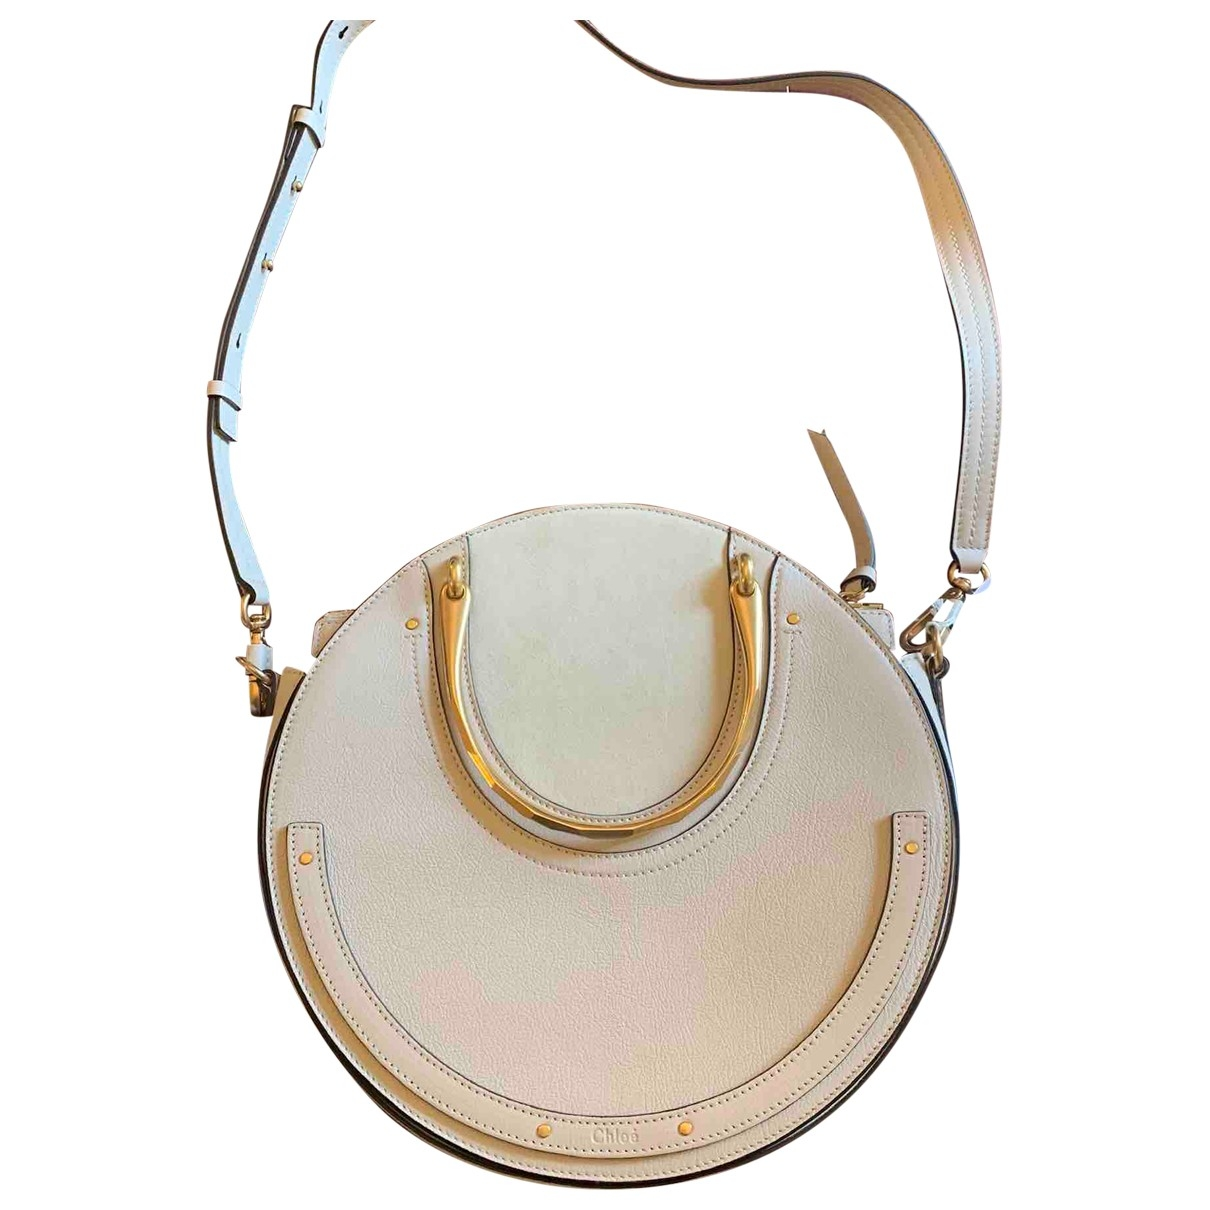 Chloé \N Beige Leather handbag for Women \N